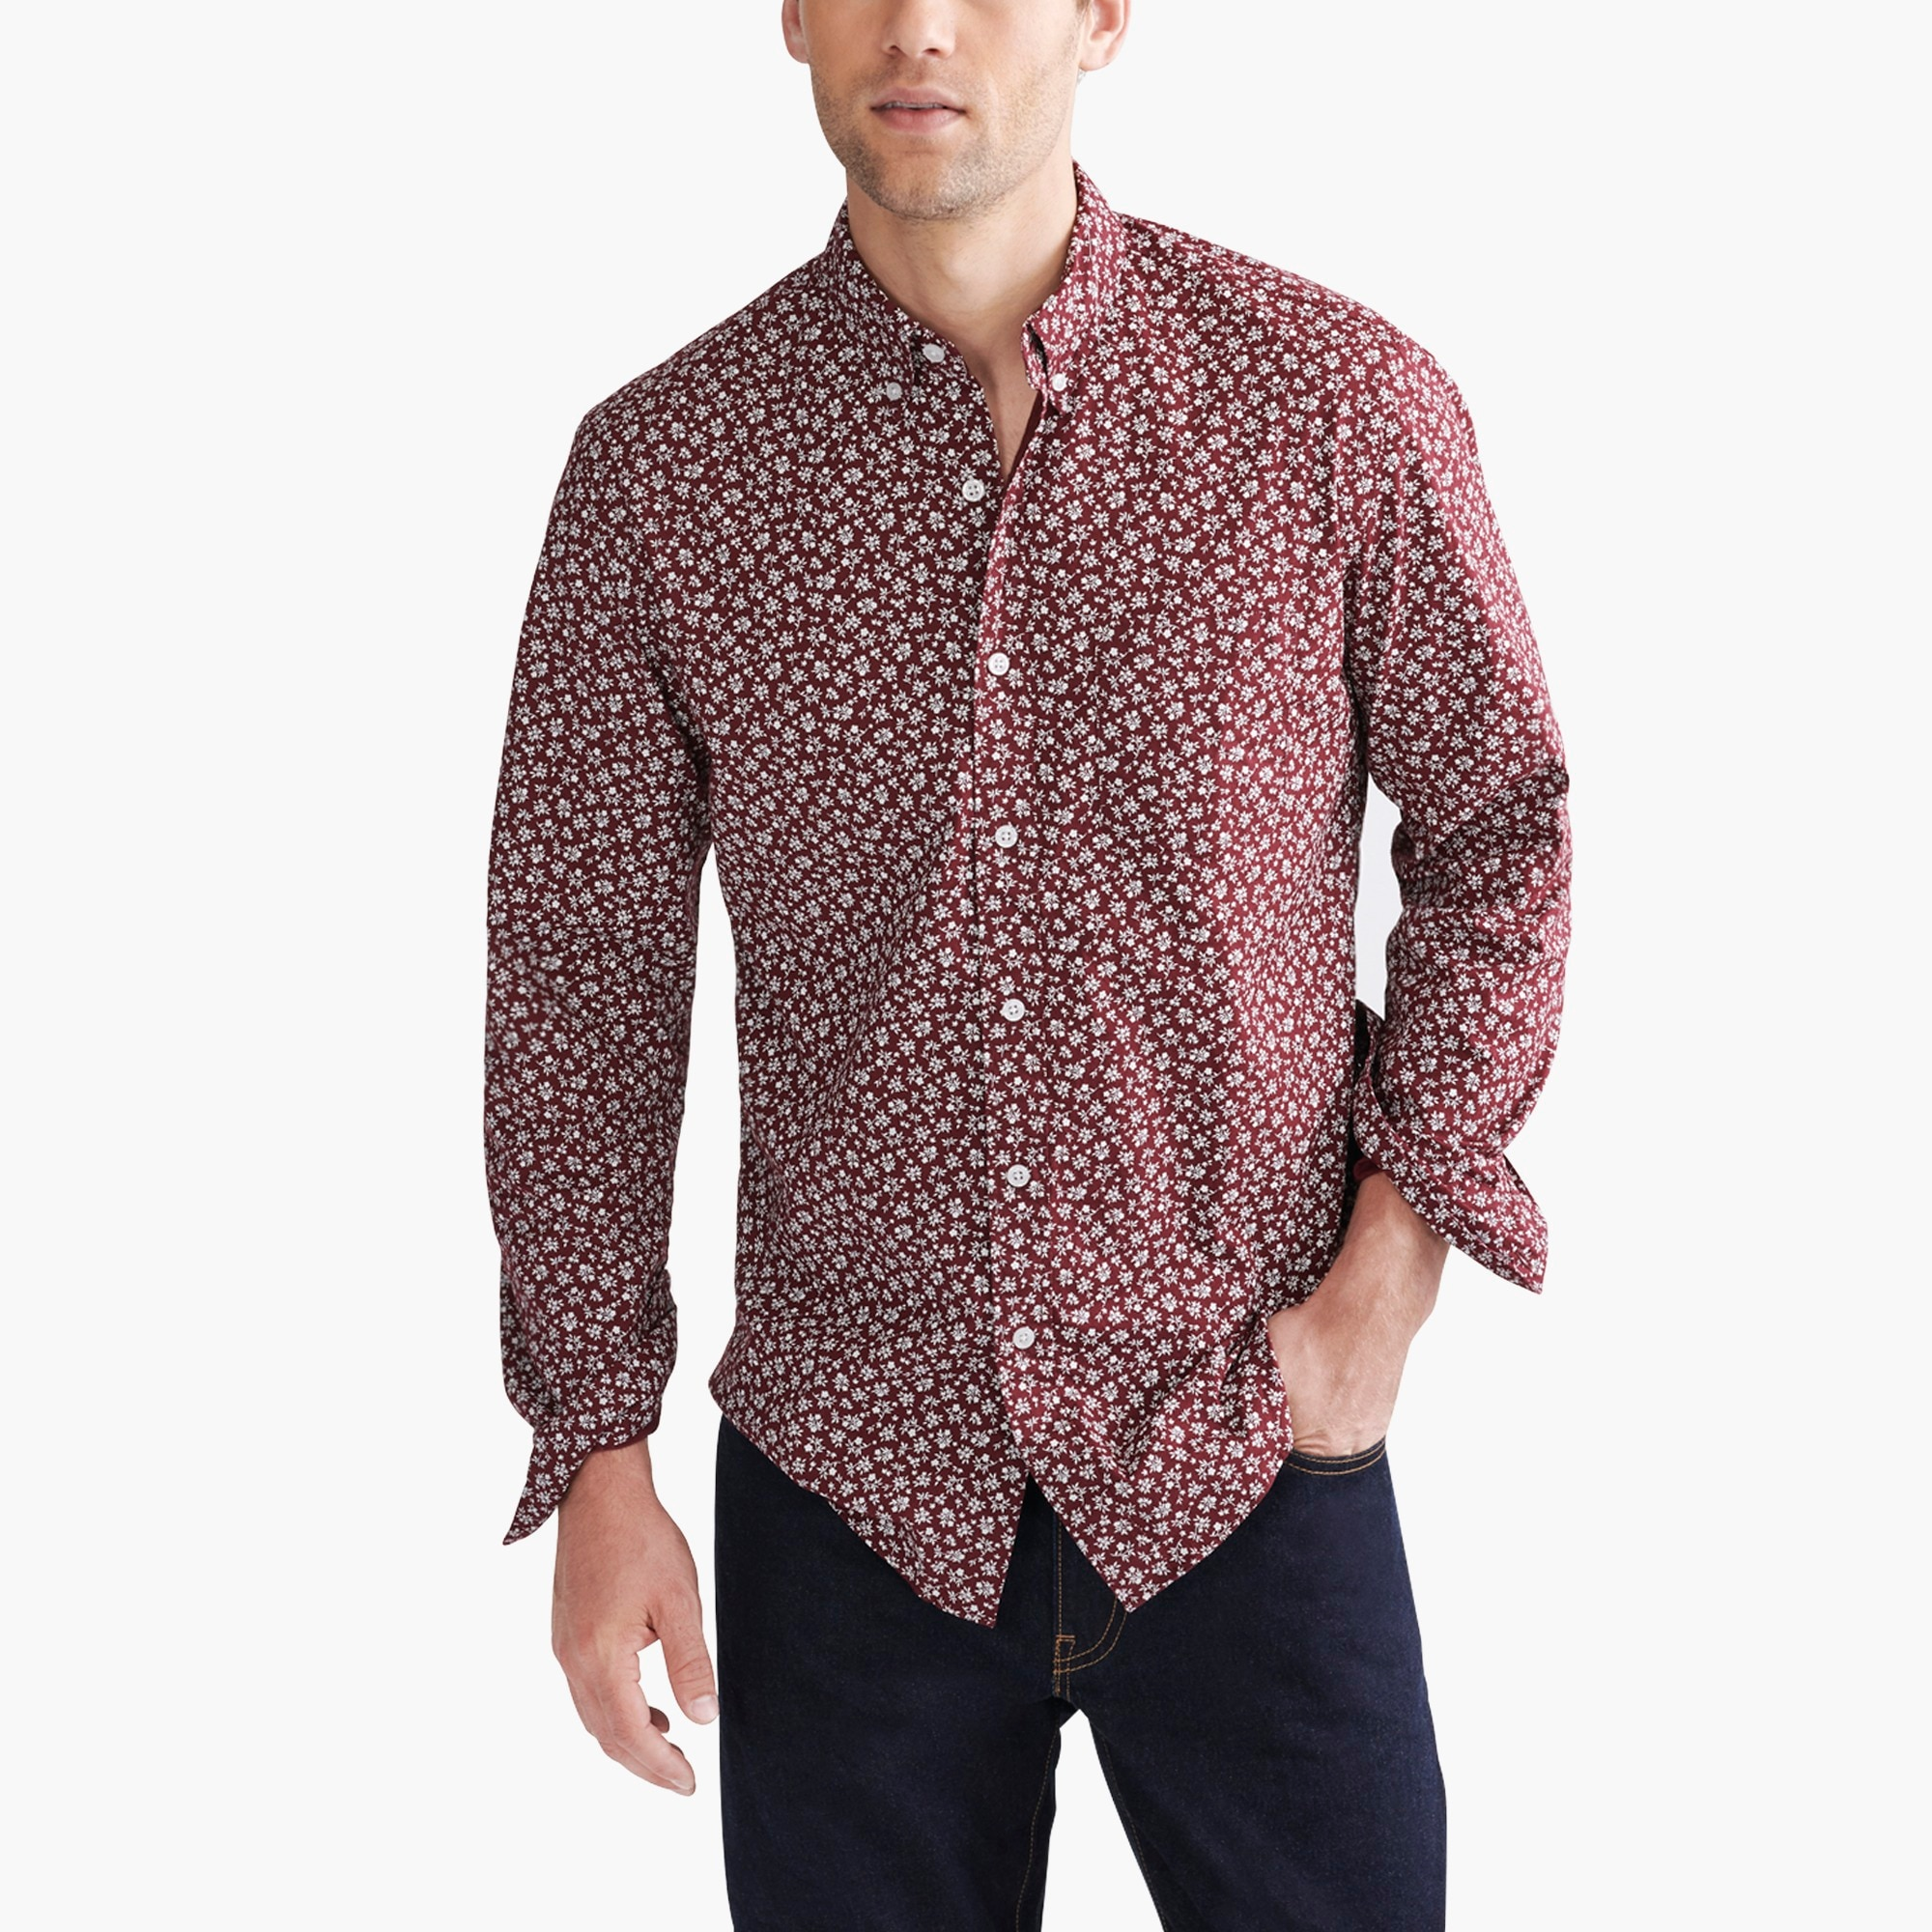 classic flex washed shirt in print : factorymen flex authentic washed